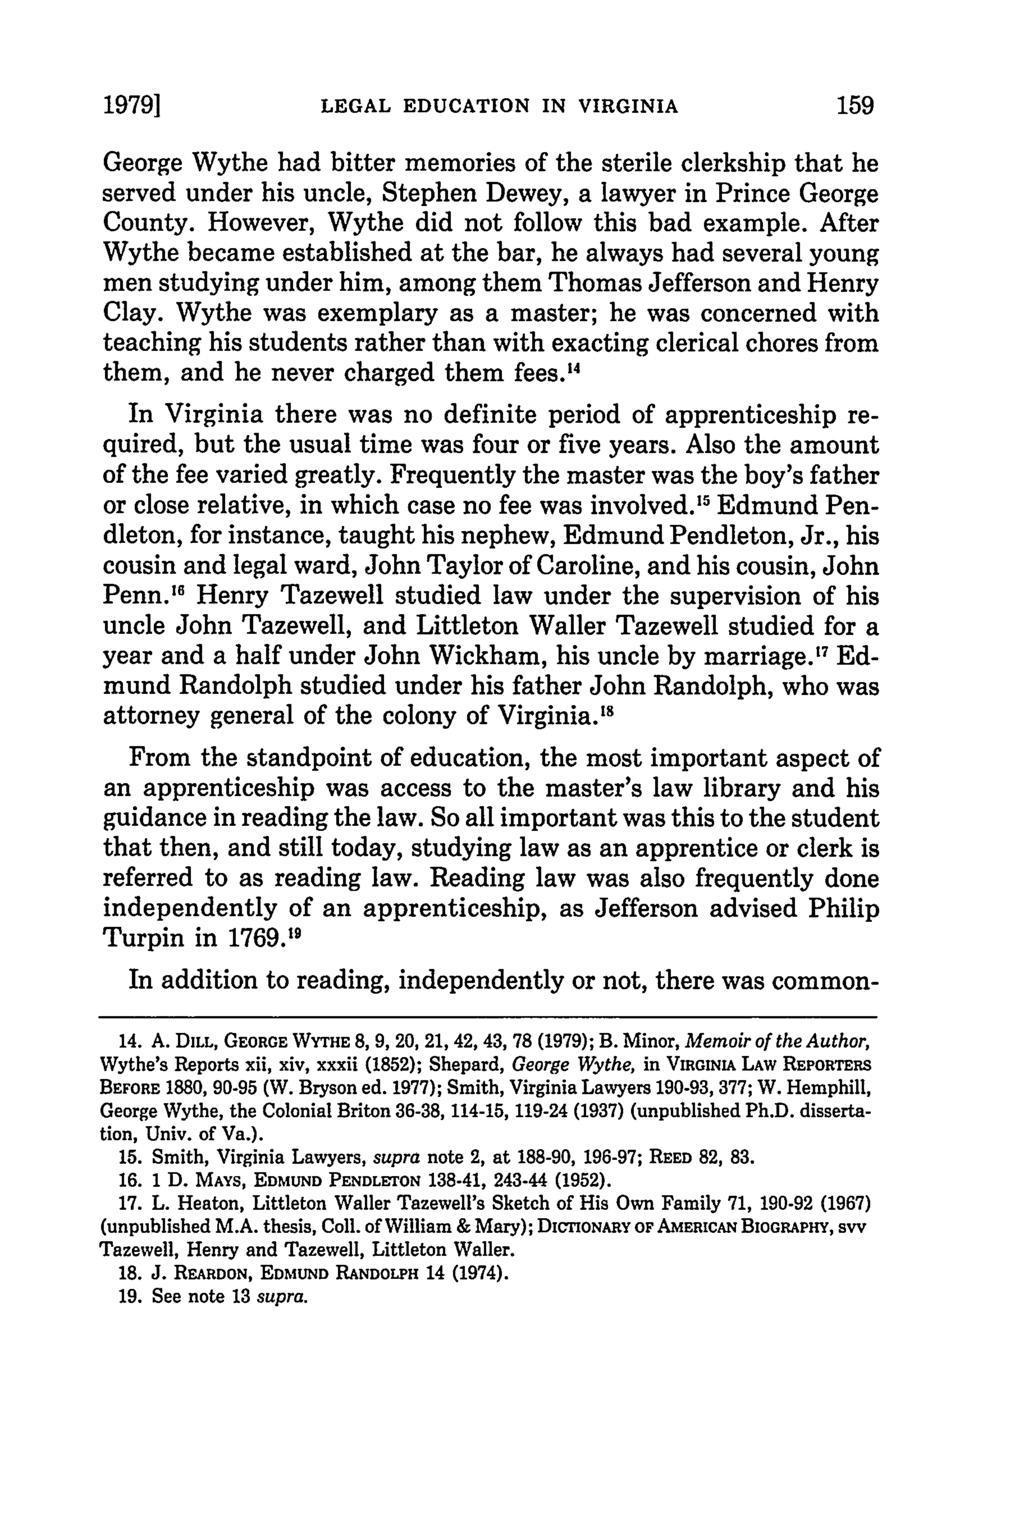 19791 LEGAL EDUCATION IN VIRGINIA George Wythe had bitter memories of the sterile clerkship that he served under his uncle, Stephen Dewey, a lawyer in Prince George County.